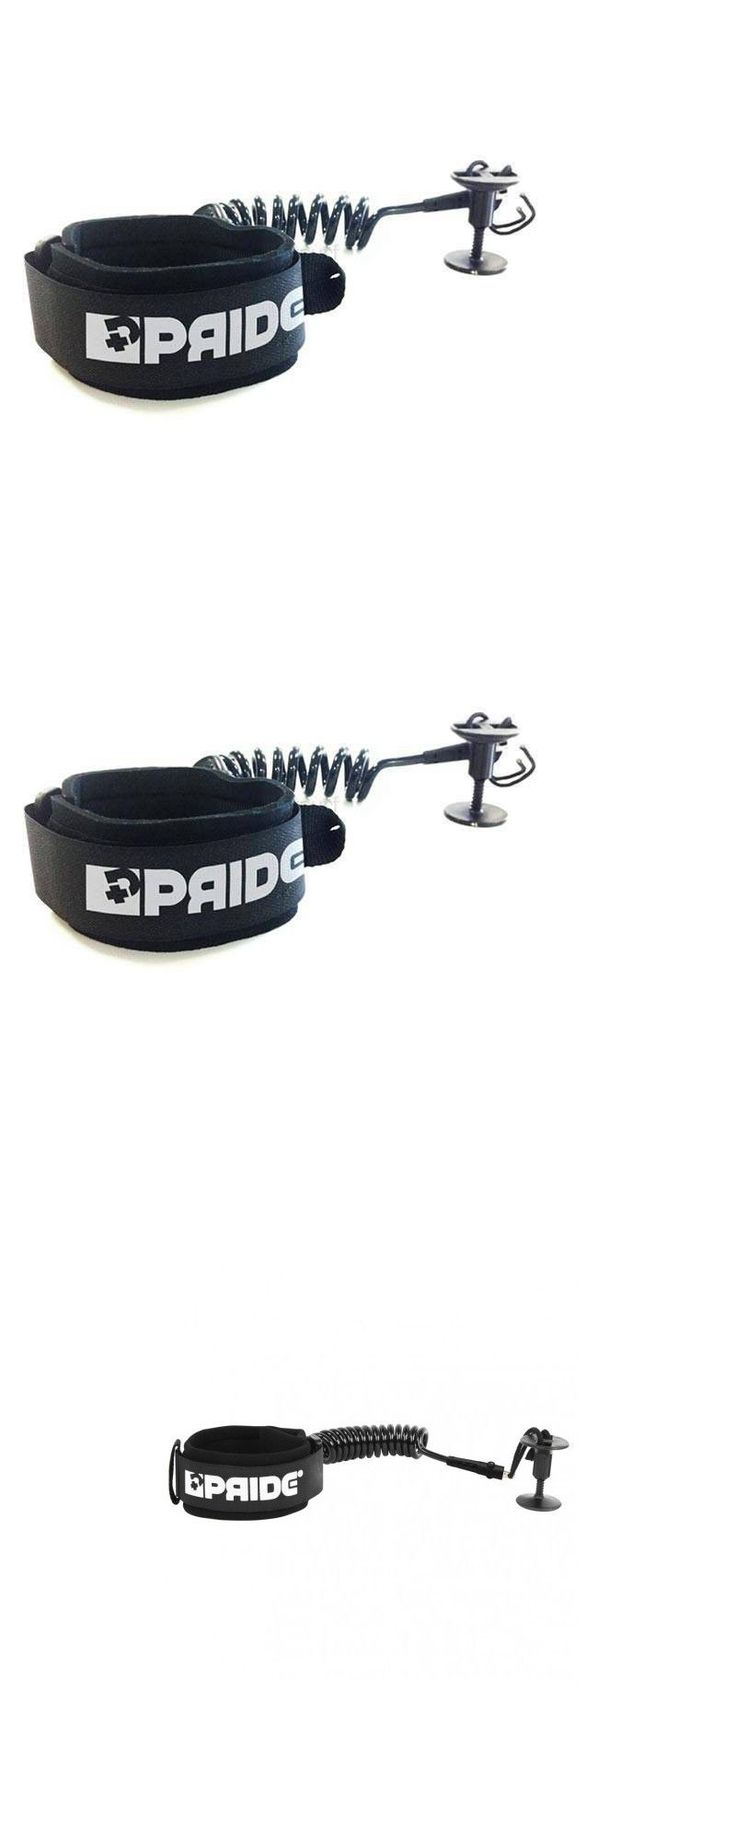 Other Surfing Accessories 71167: New Pride Standard Bodyboard Bicep Leash New Black Comp Surf Plc Houston Finnega -> BUY IT NOW ONLY: $30 on eBay!